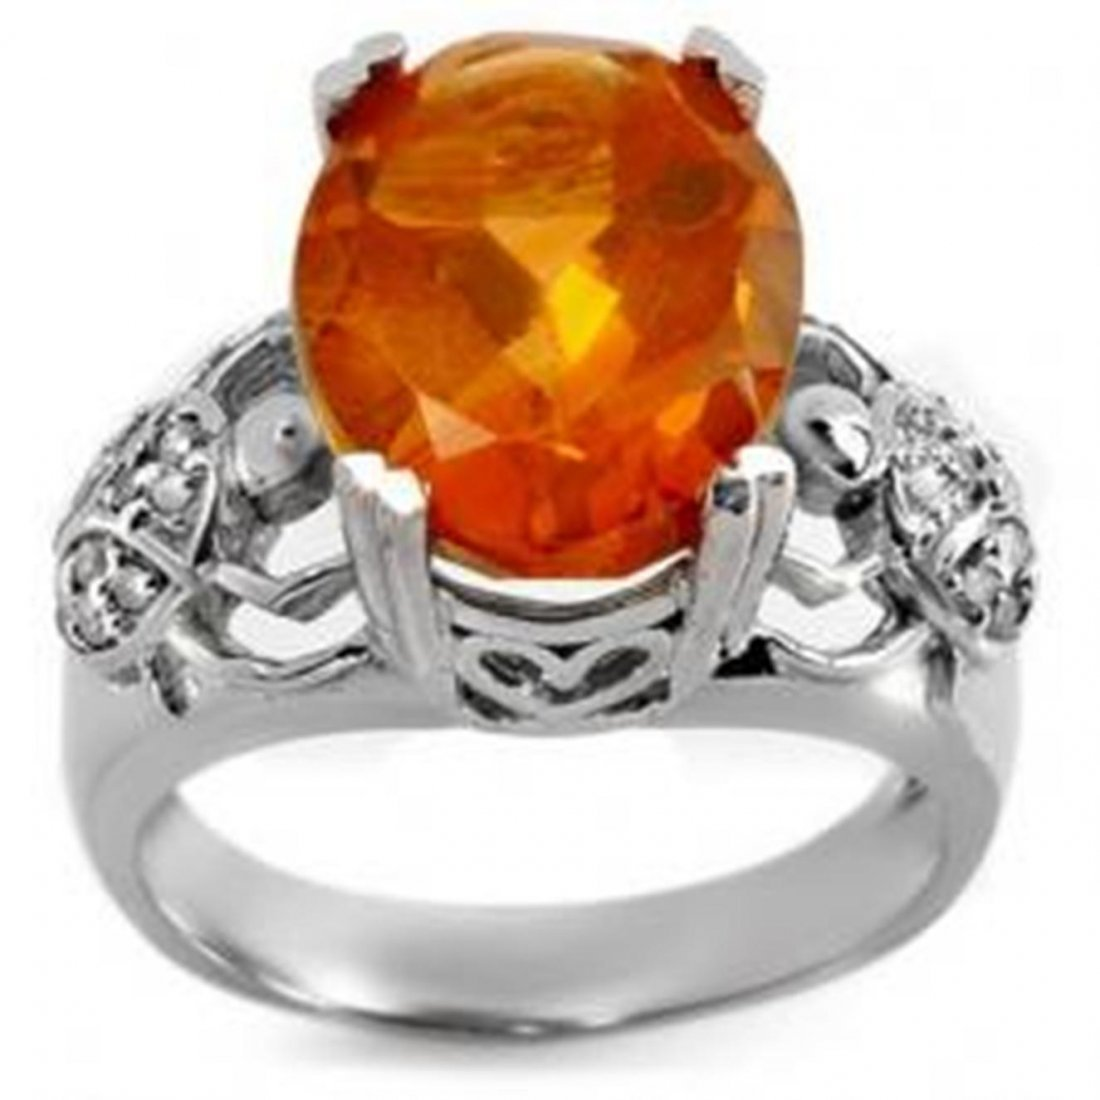 4F: 6.20 ctw Citrine & Diamond Ring